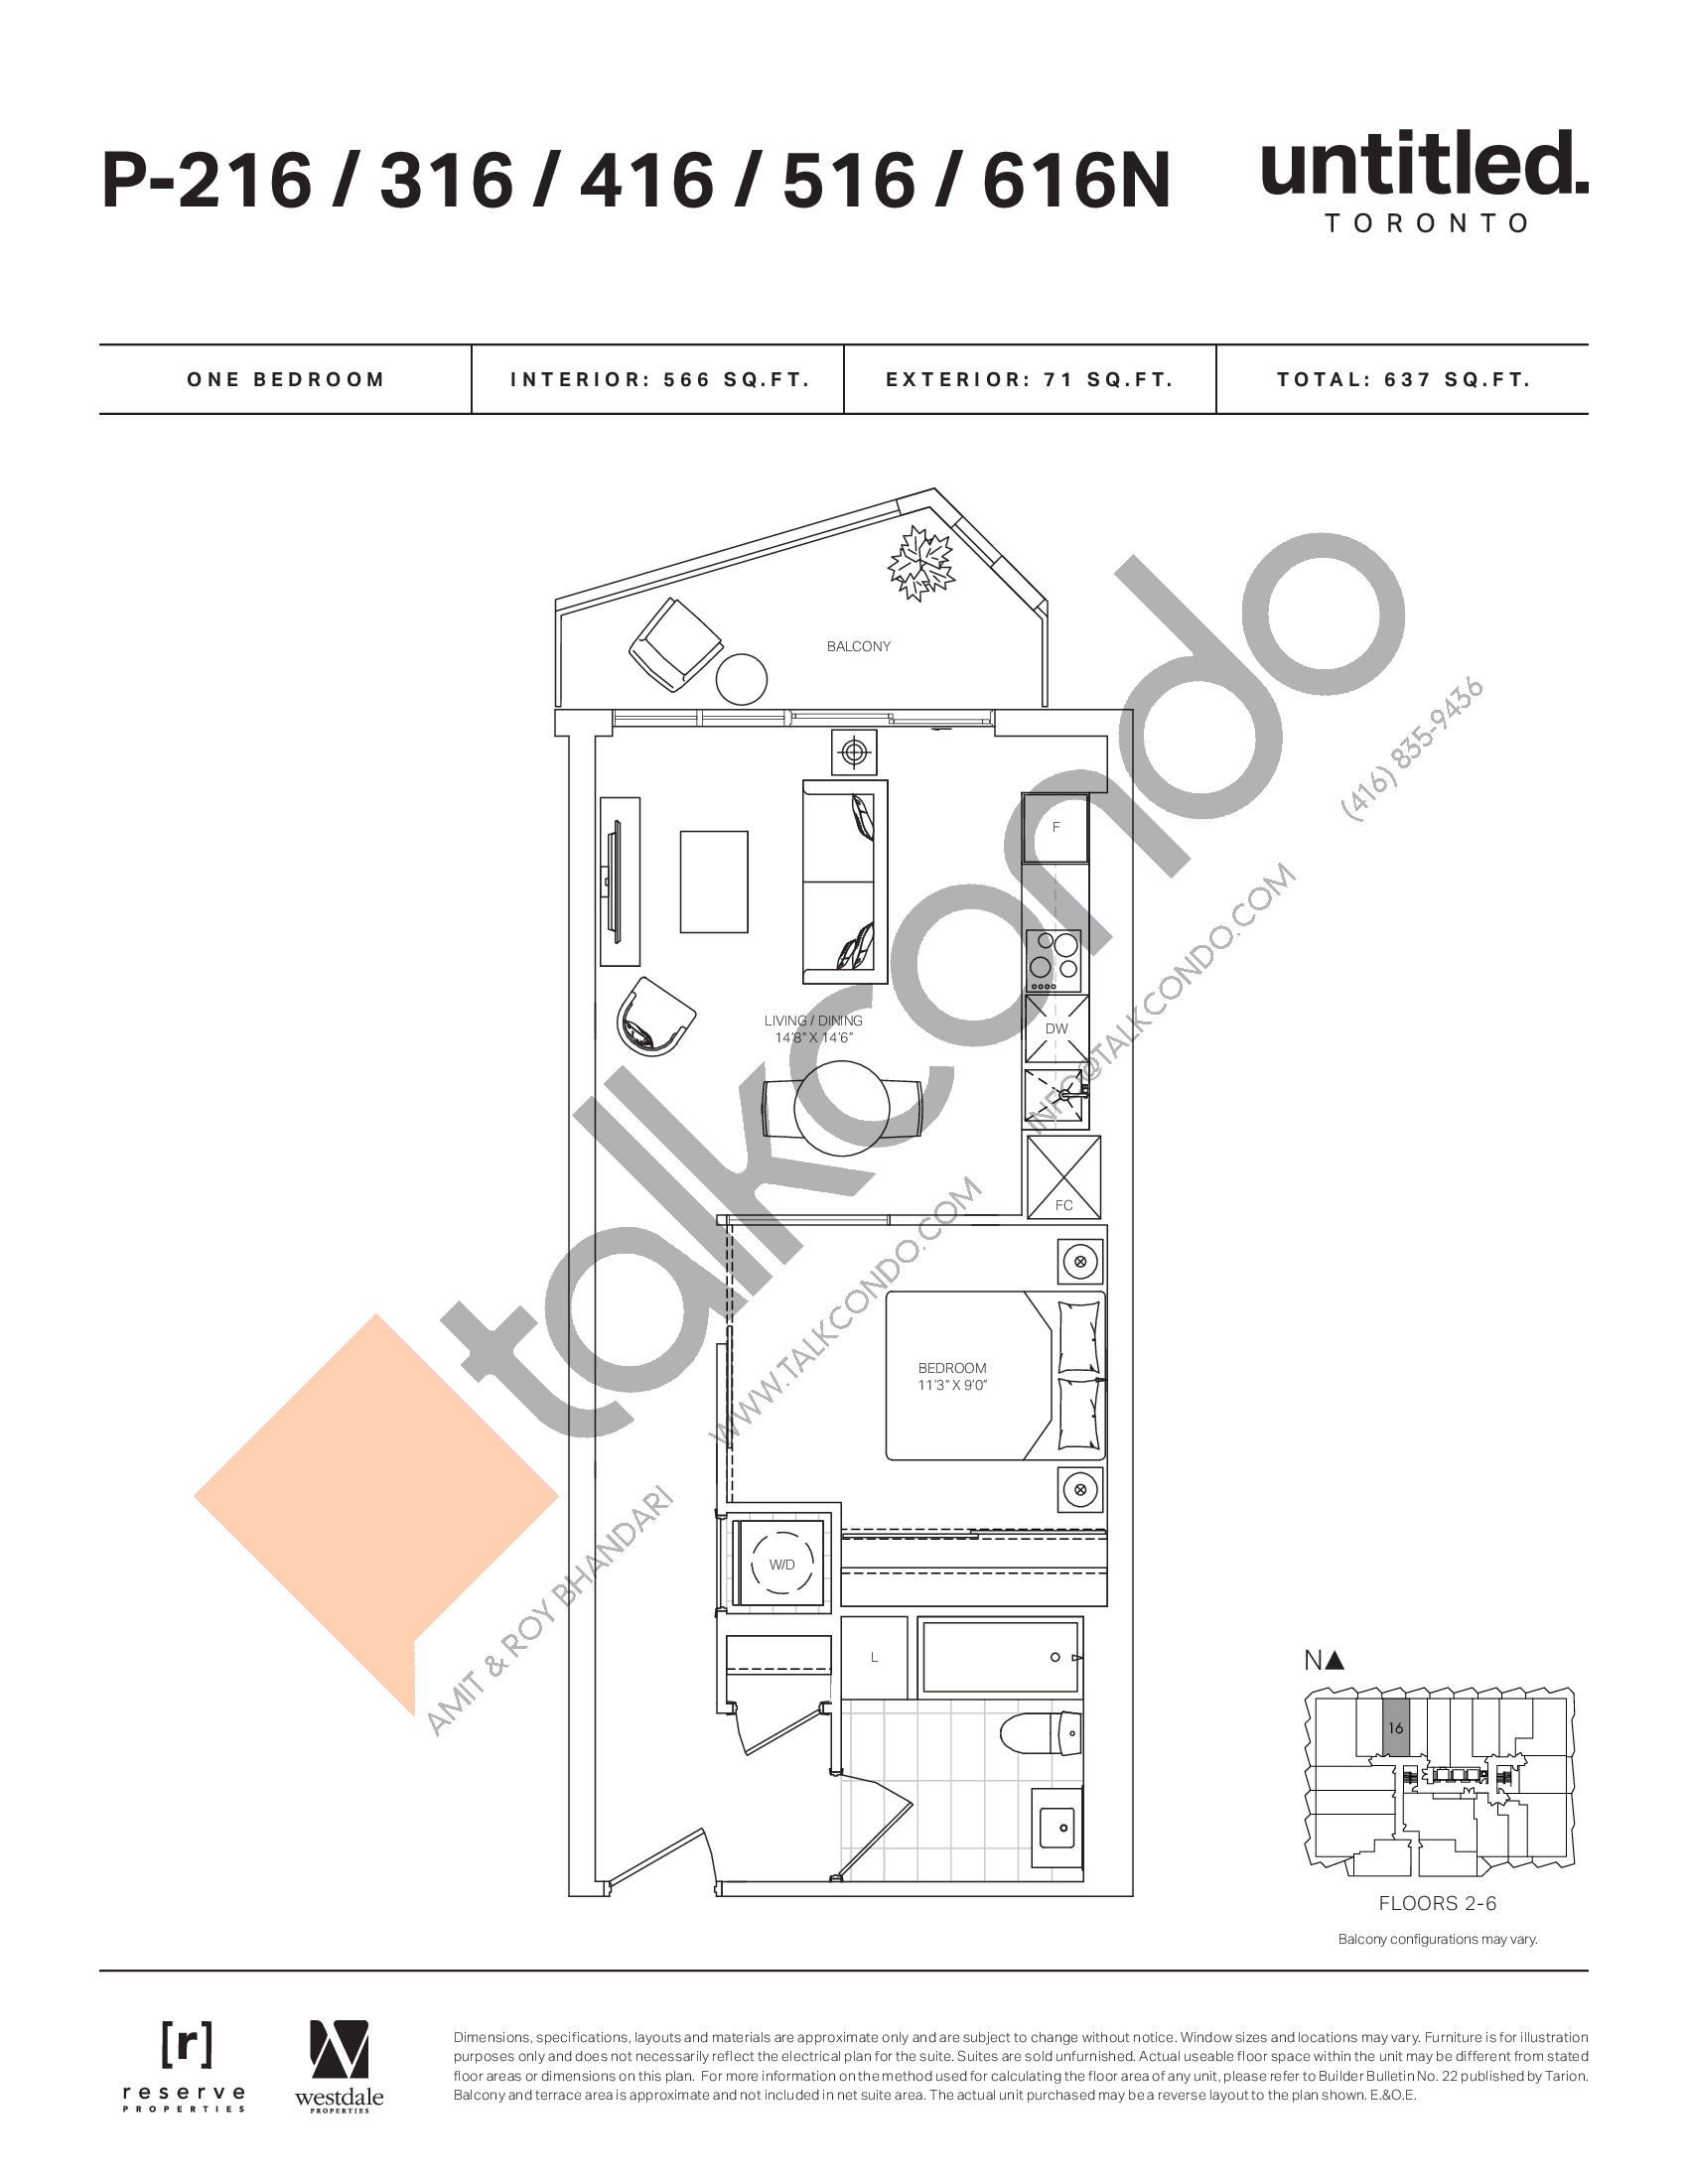 P-216/316/416/516/616N Floor Plan at Untitled North Tower Condos - 566 sq.ft